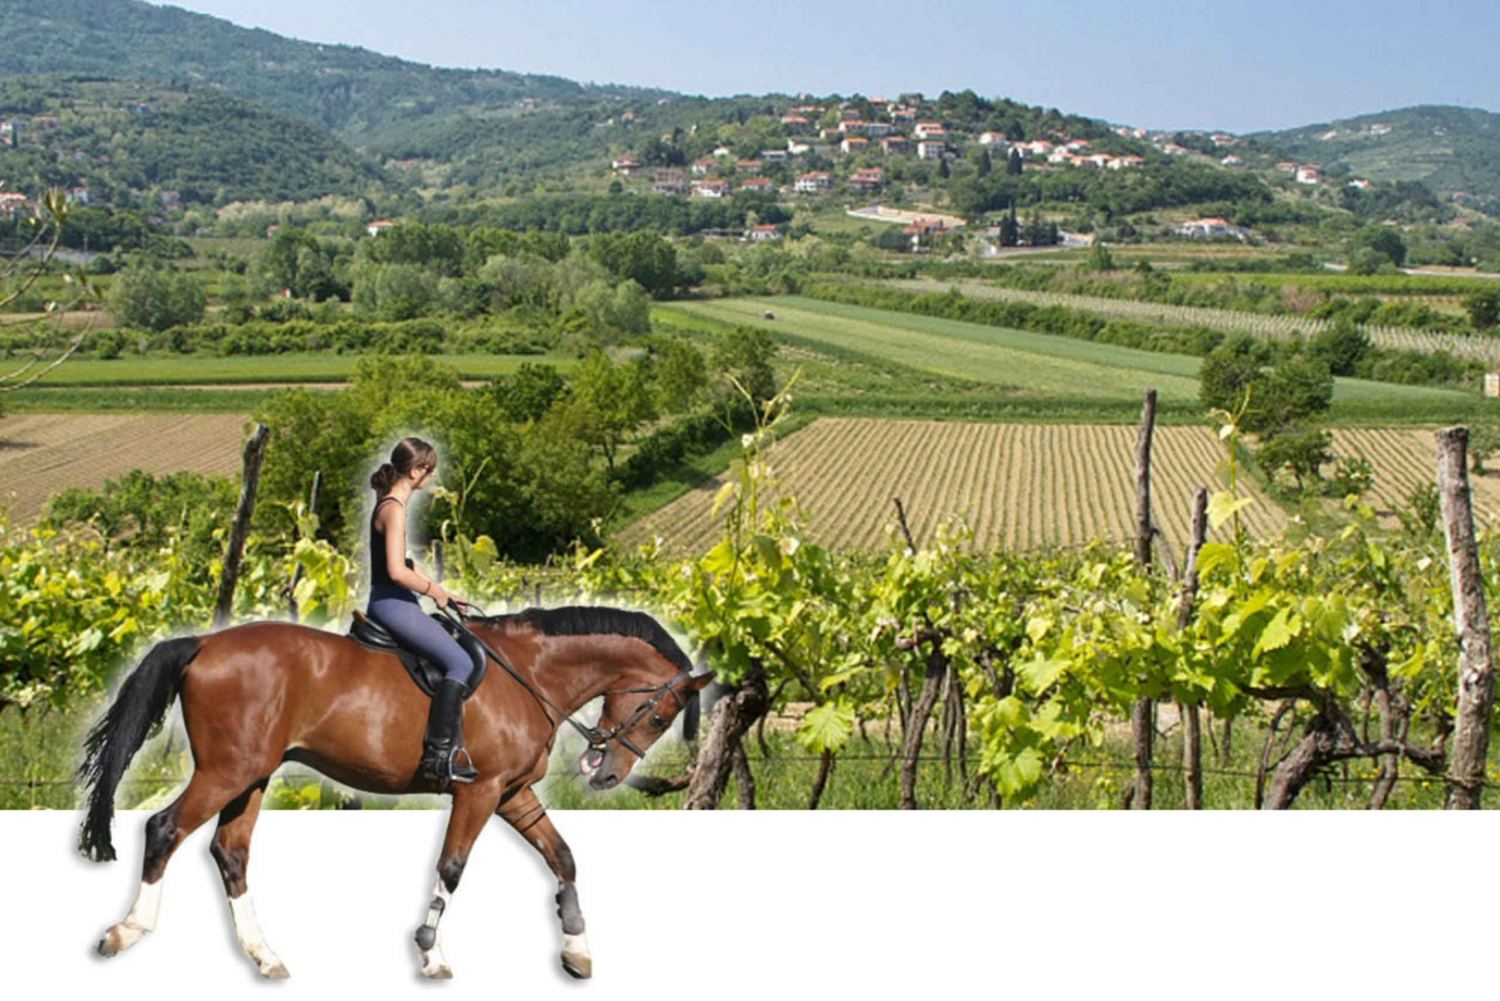 Horses and Vineyards